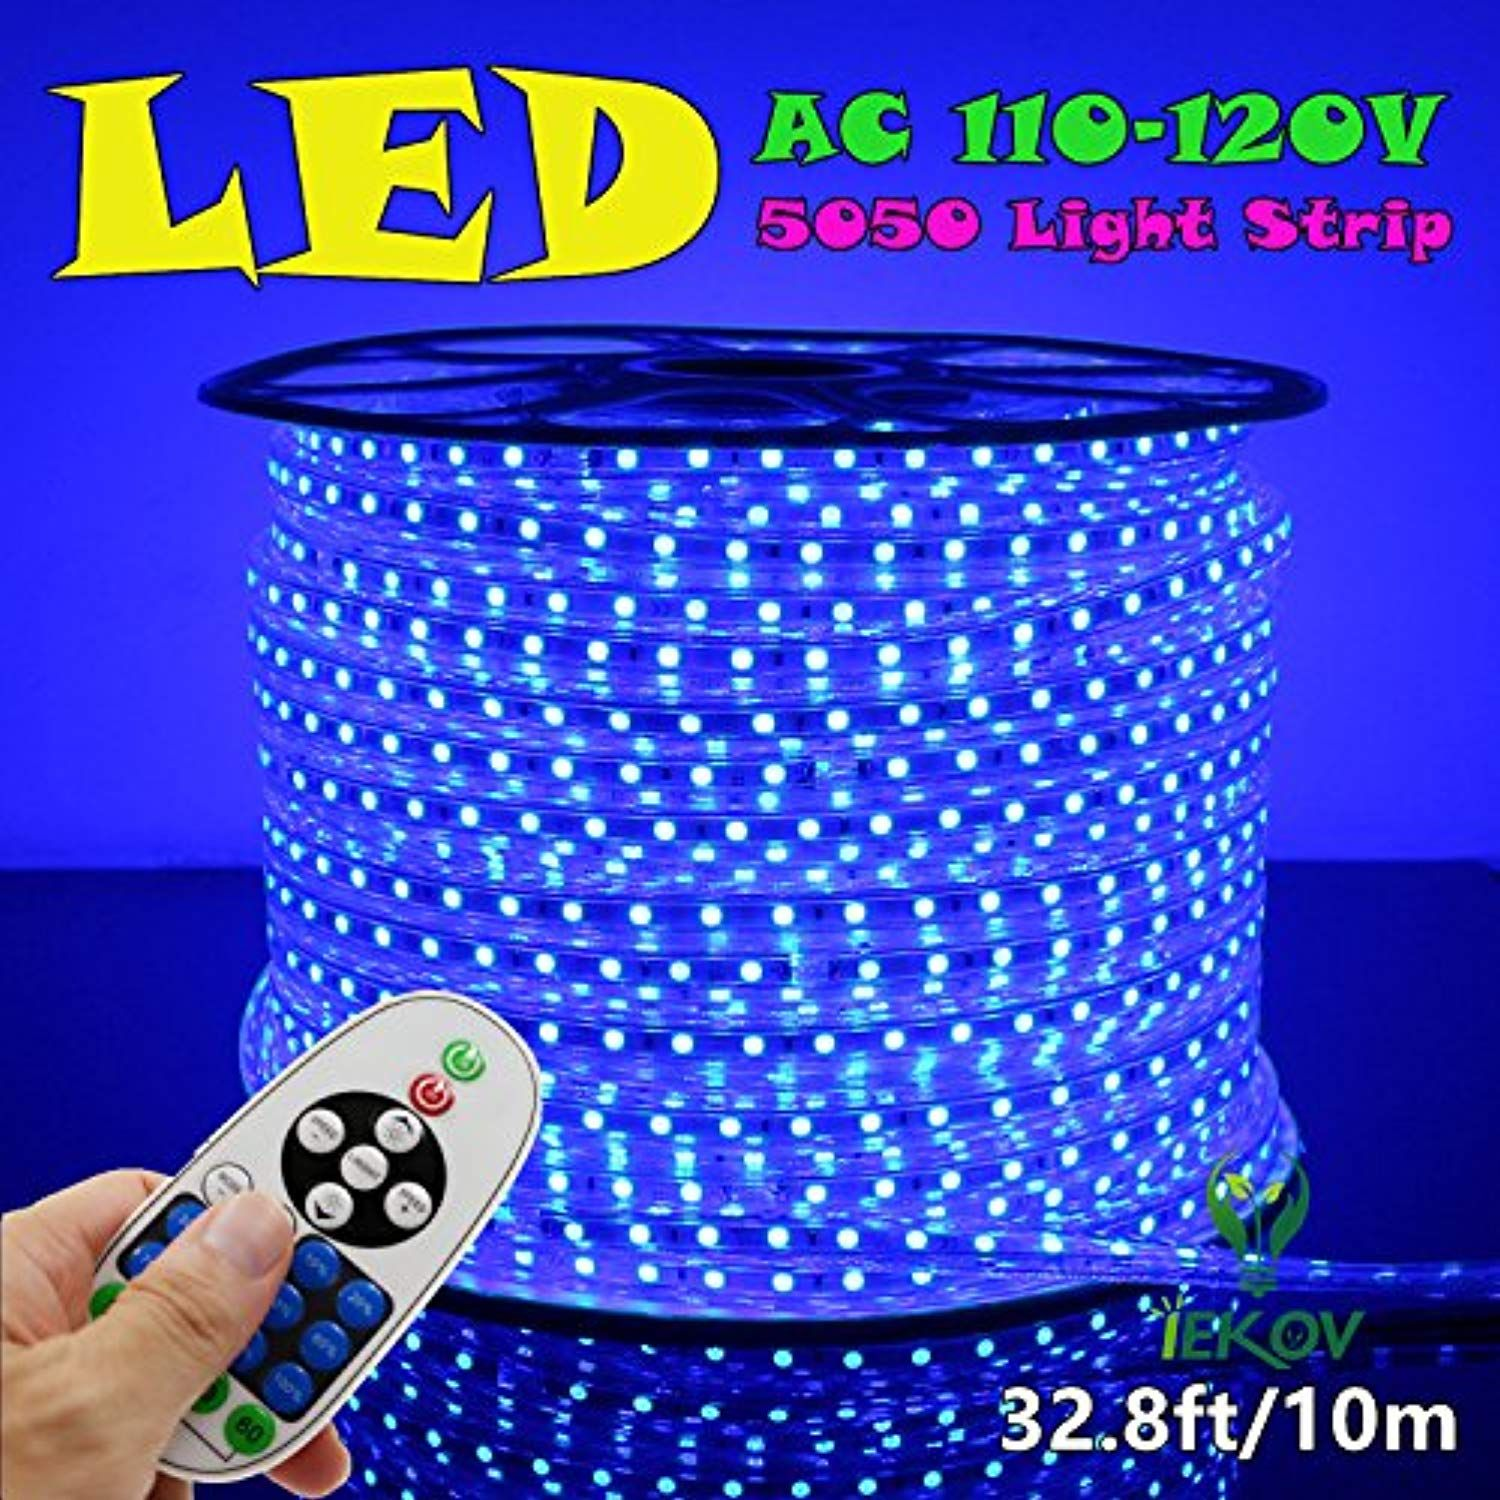 Iekov Trade Ac 110 120v Flexible Led Strip Lights 60 Leds M Dimmable Waterproof 5050 Smd Led R Led Rope Lights Flexible Led Strip Lights Led Strip Lighting